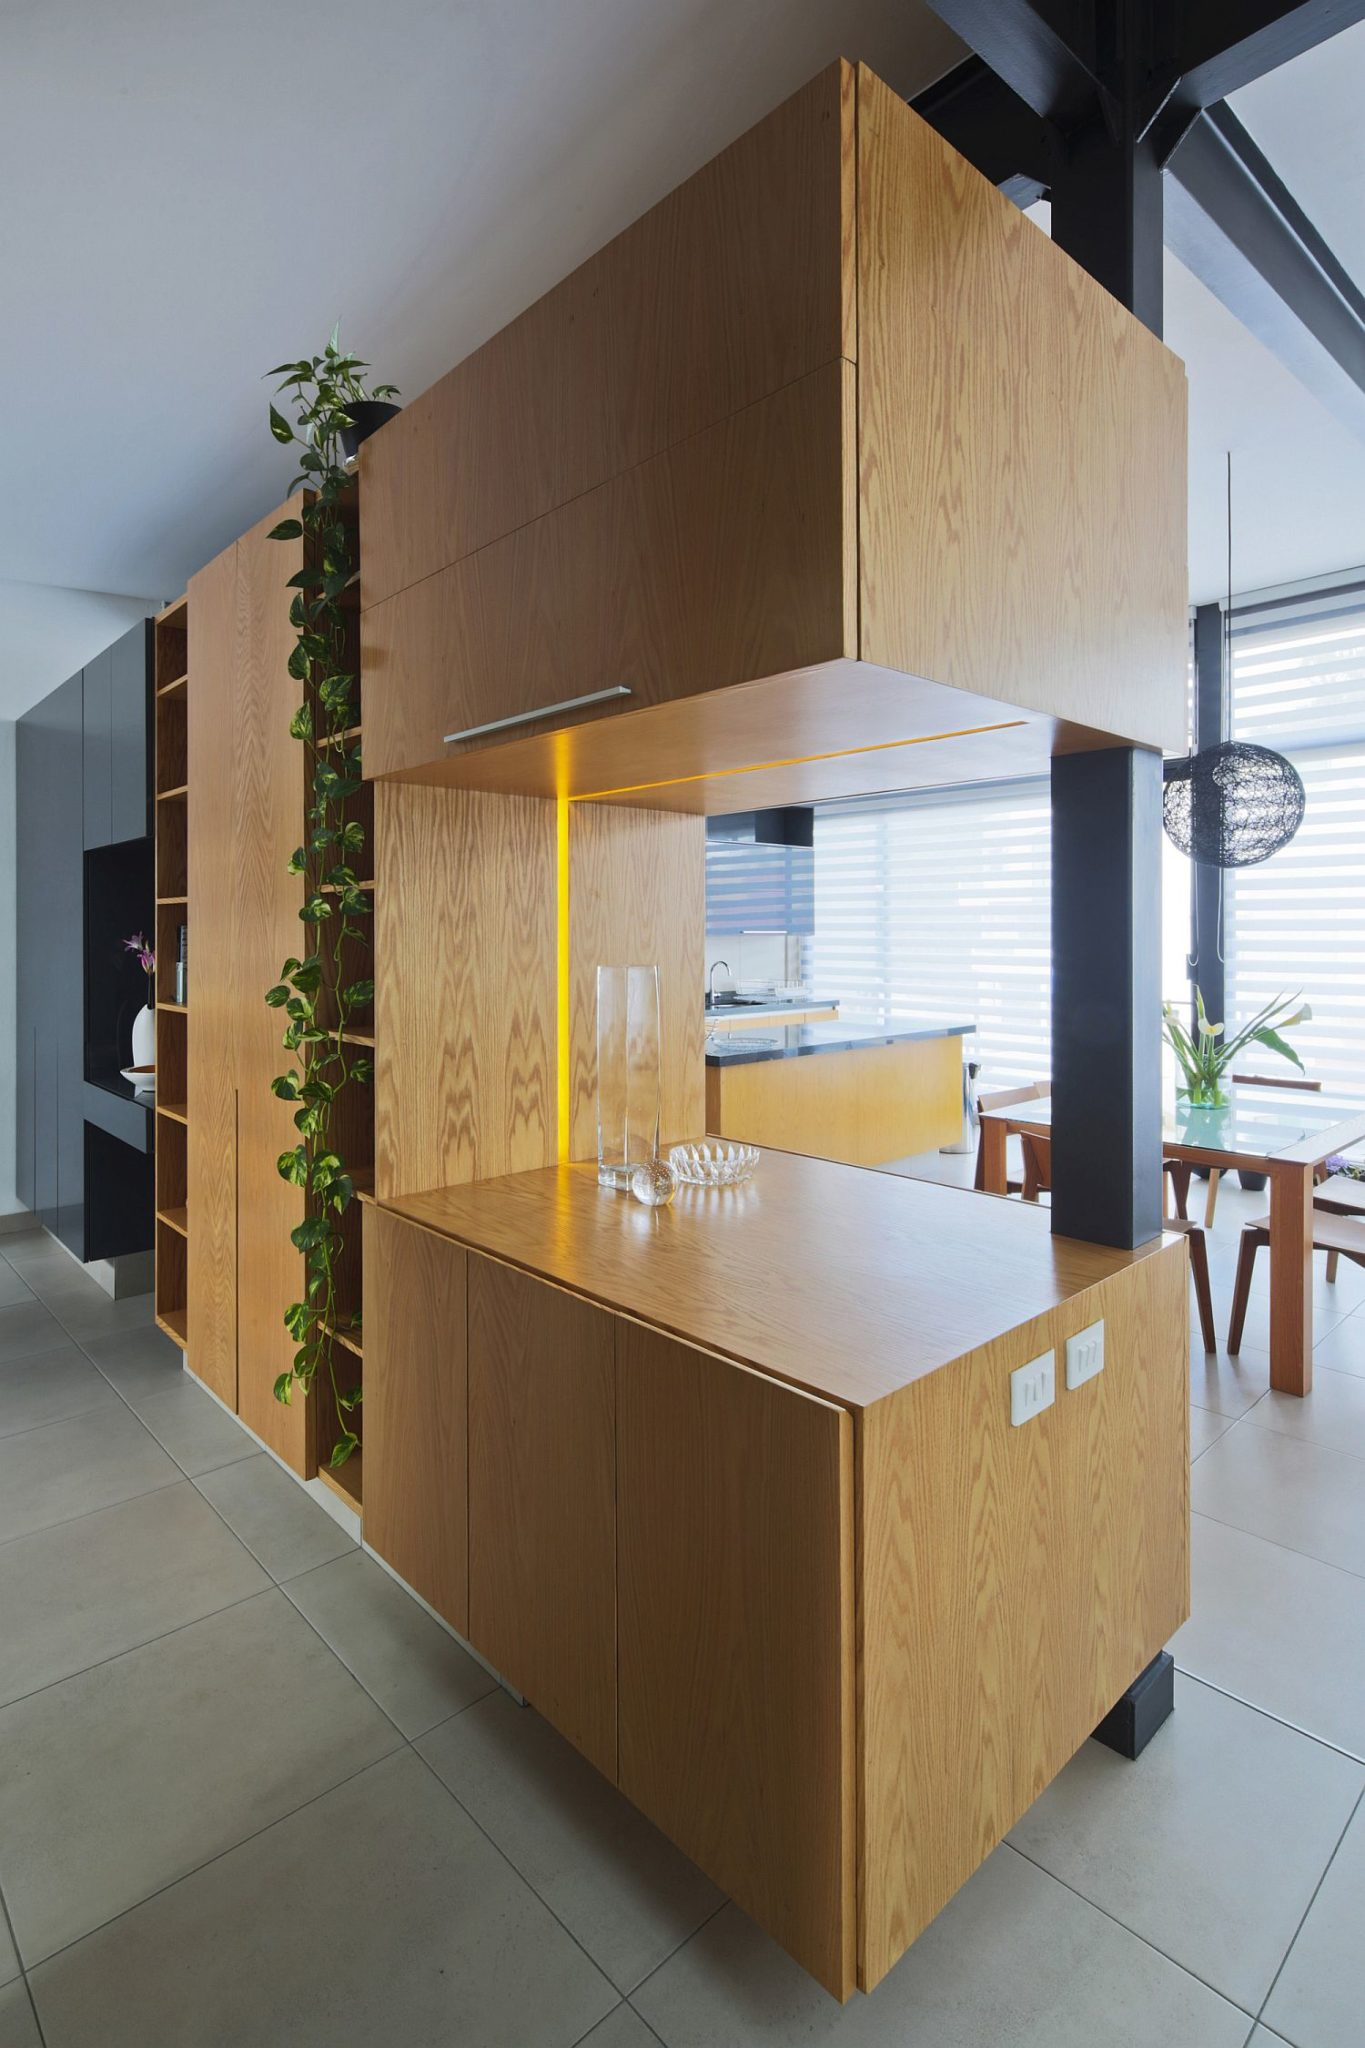 Natural oak wood volume inside the home steals the spotlight